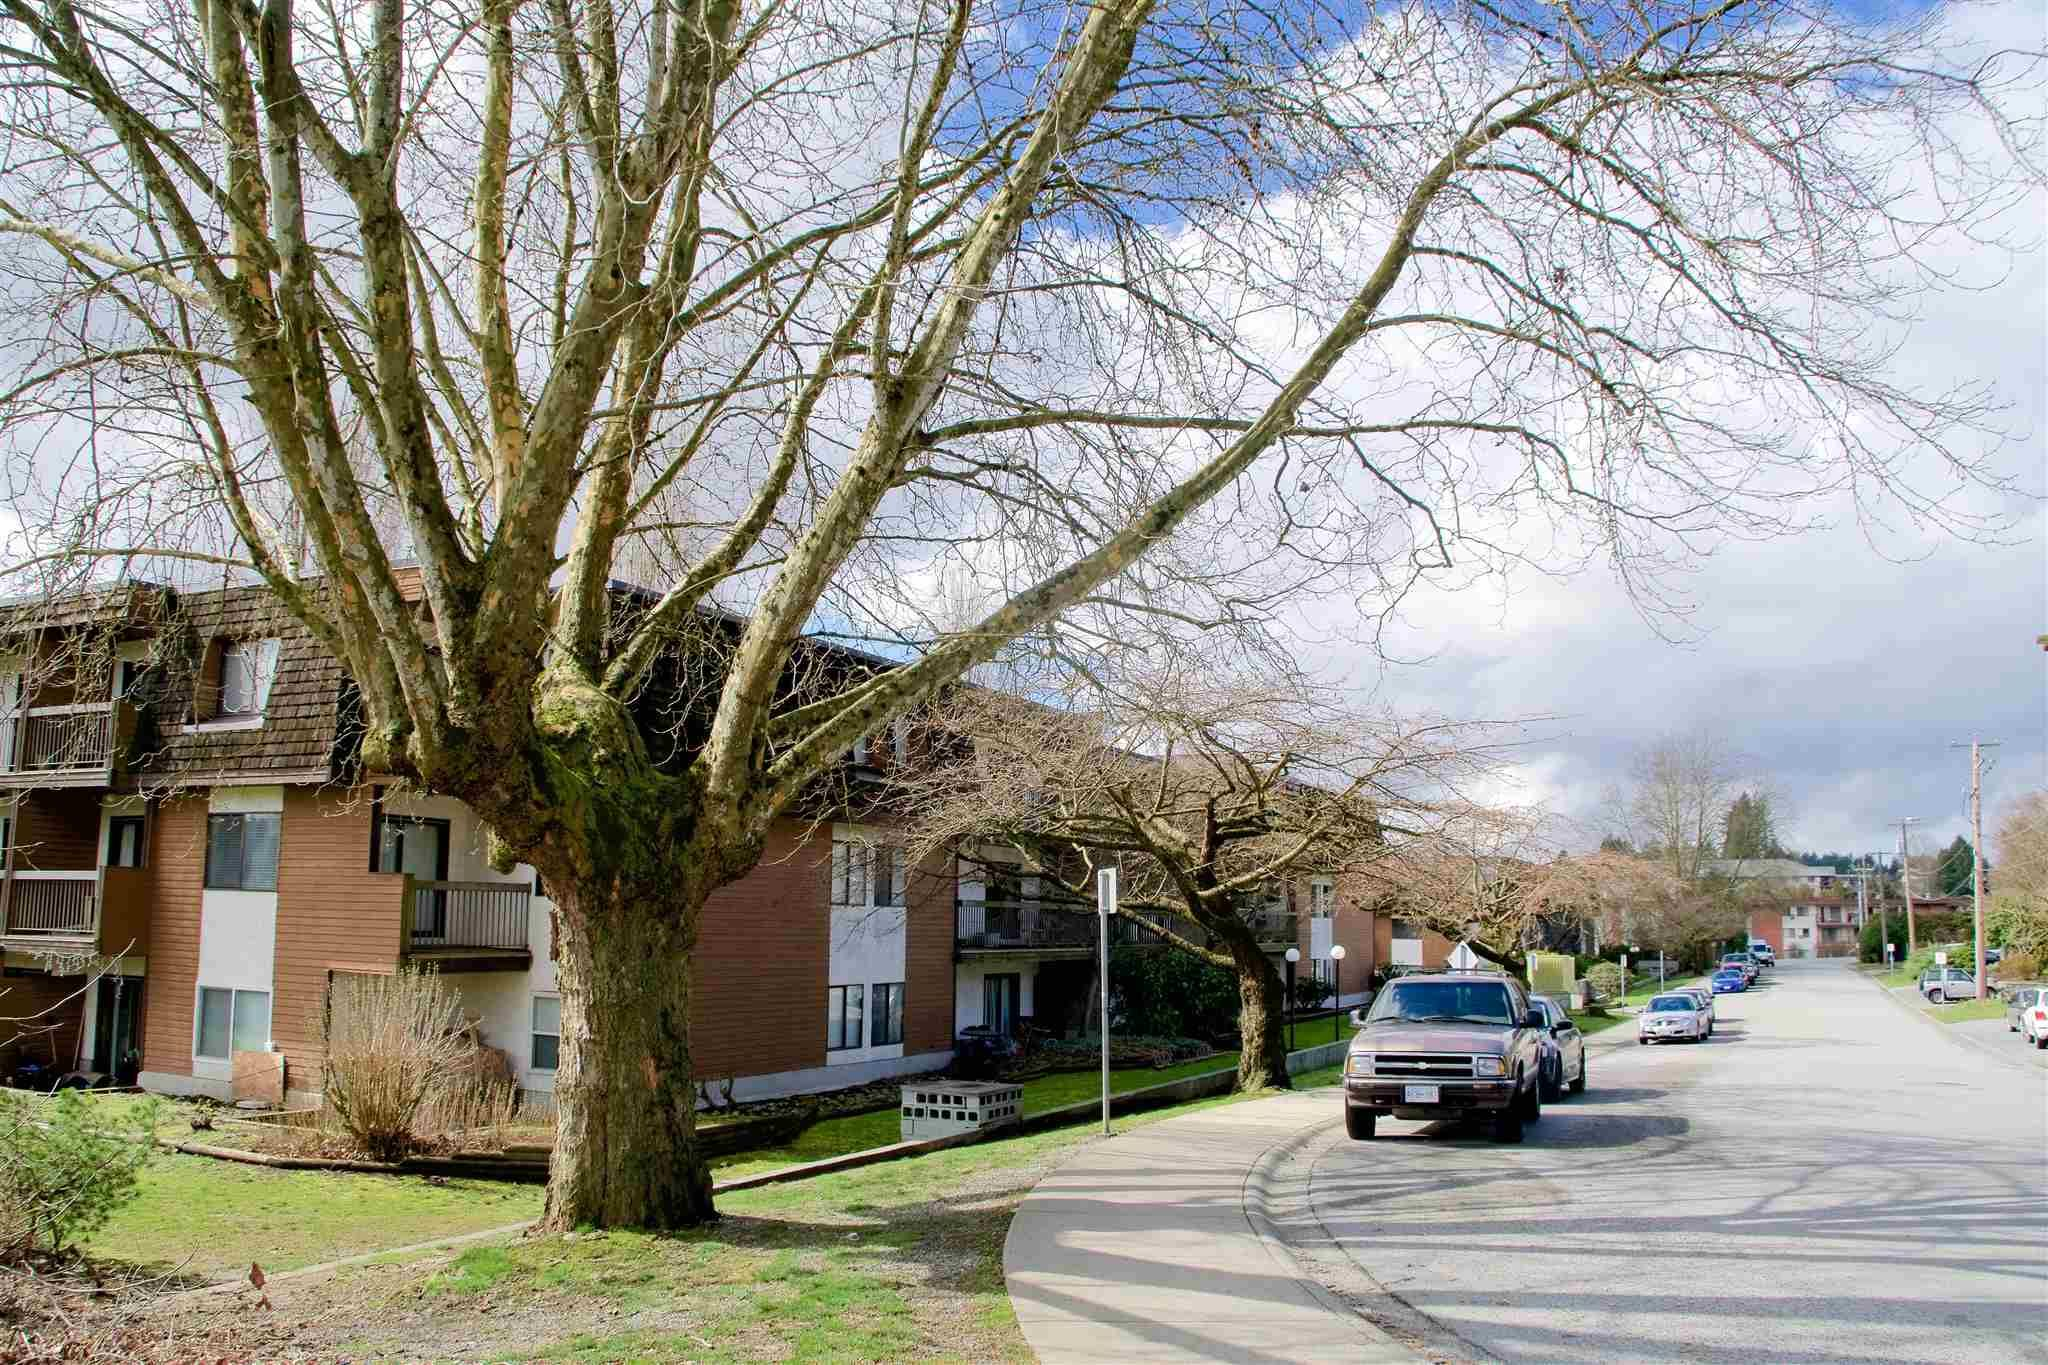 Main Photo: 313 33870 FERN Street in Abbotsford: Central Abbotsford Condo for sale : MLS®# R2599642